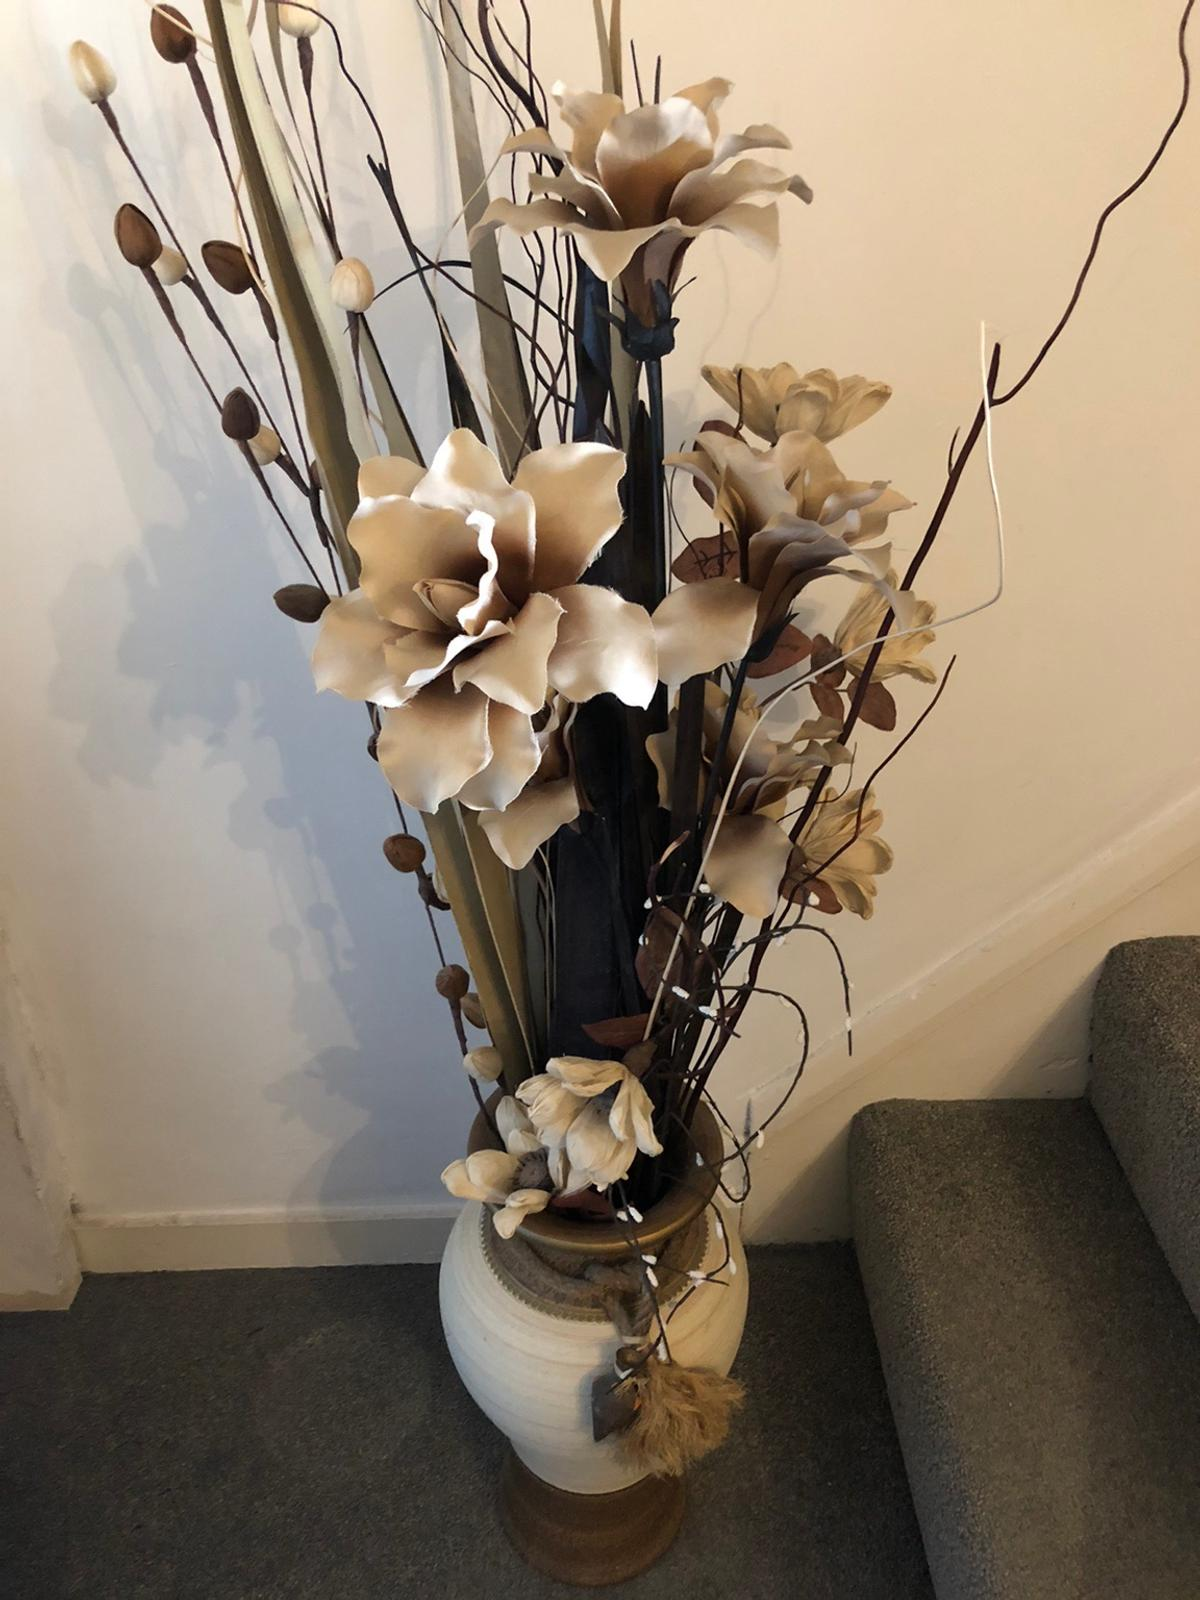 Large Vase With Artificial Flowers In Sevenoaks For 25 00 For Sale Shpock